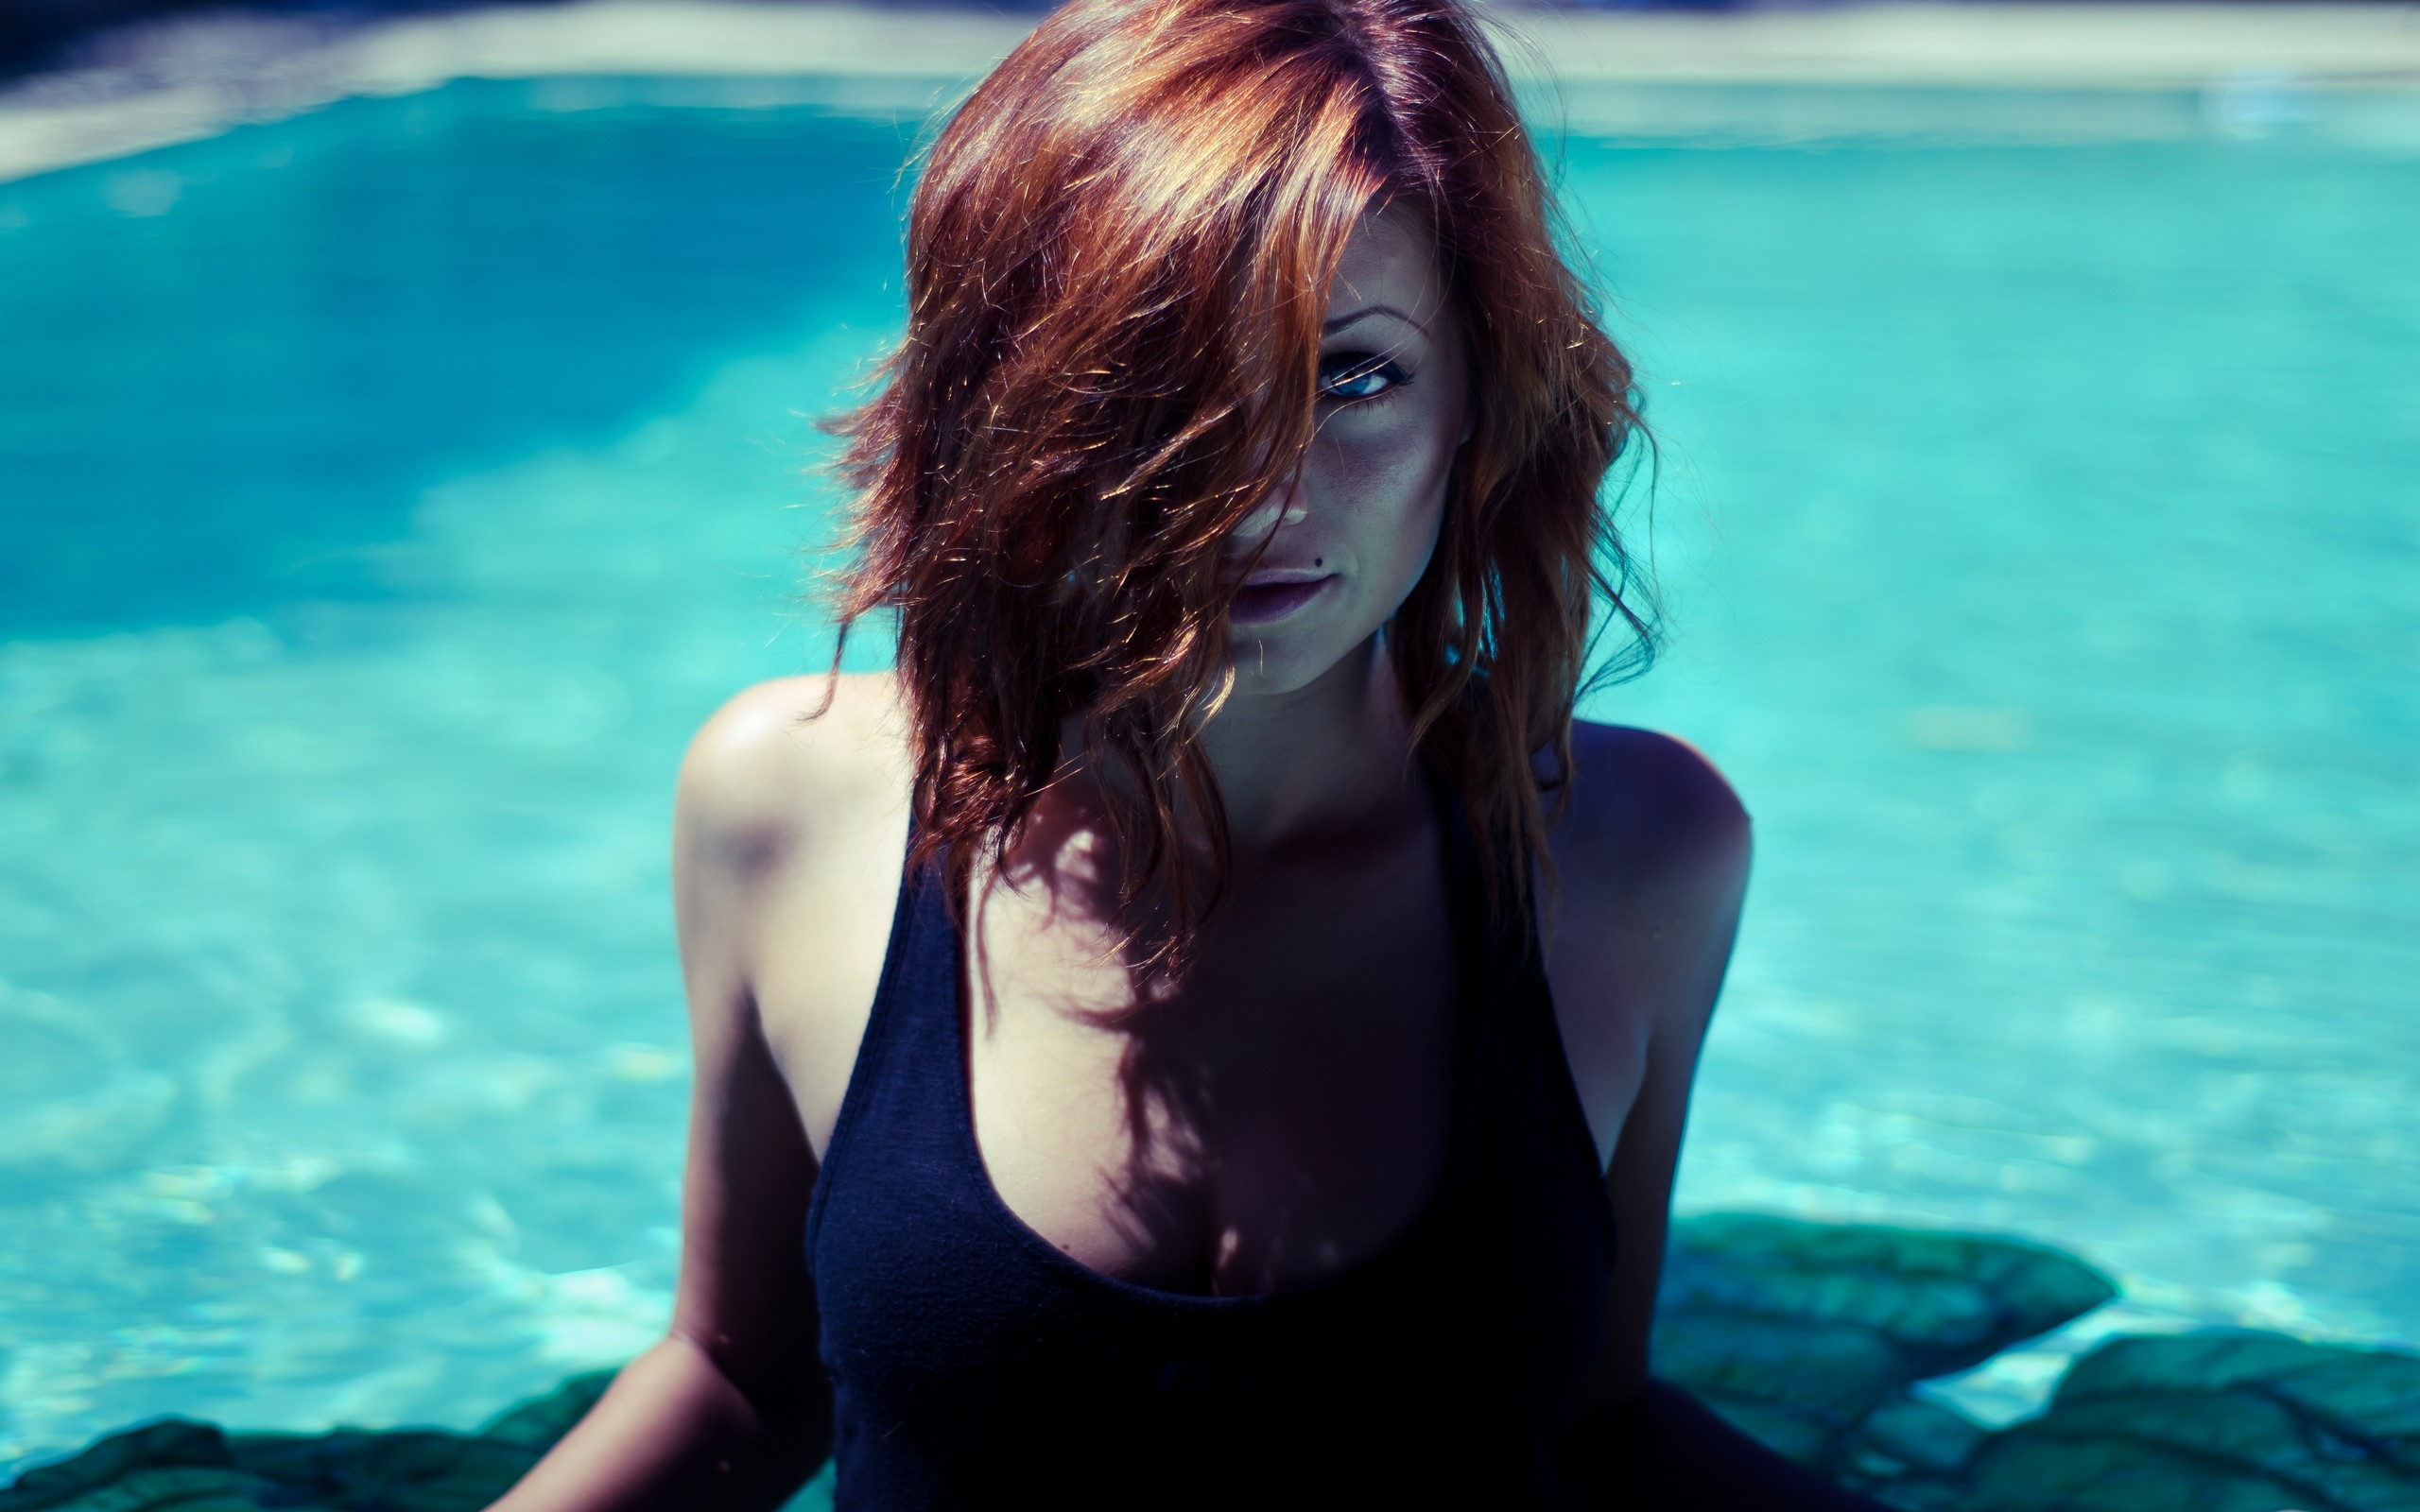 woman, beauty, water, hair